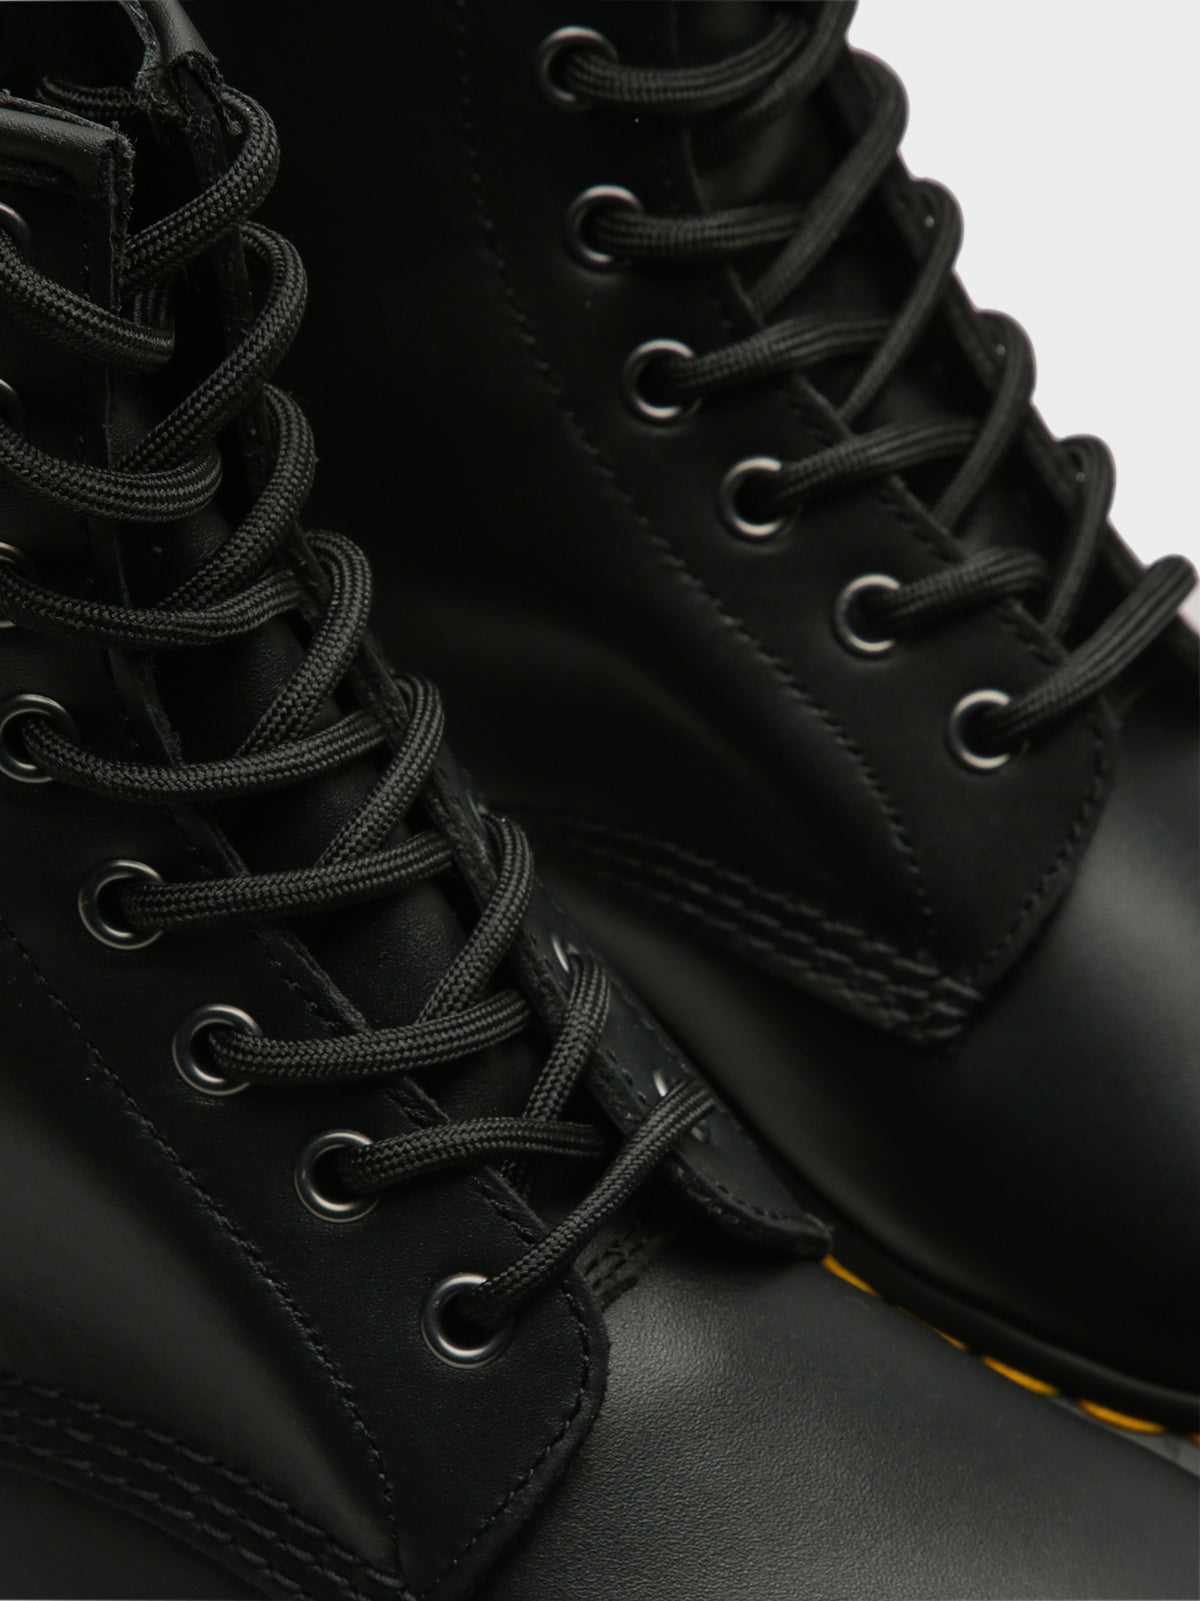 Unisex 1460 Lace-Up Boots in Nappa Black Leather